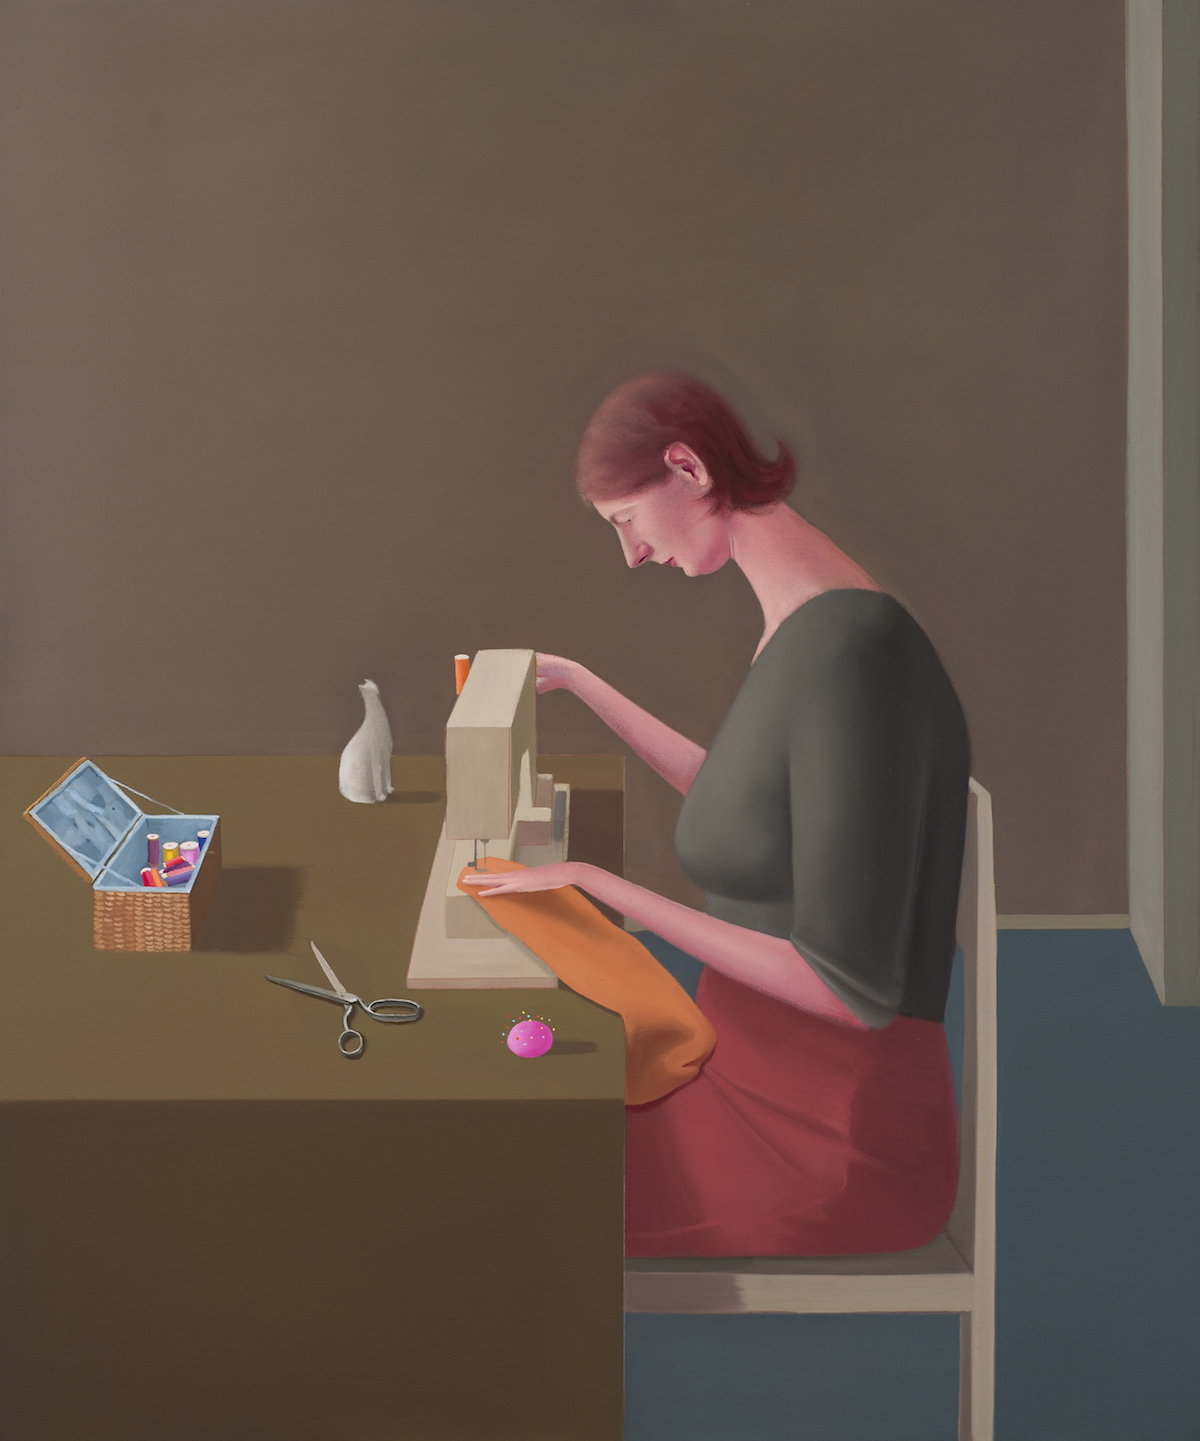 Prudence Flint, Sewing Machine, 2012, oil on linen, 122 x 102cm. Photography Ian Hill.